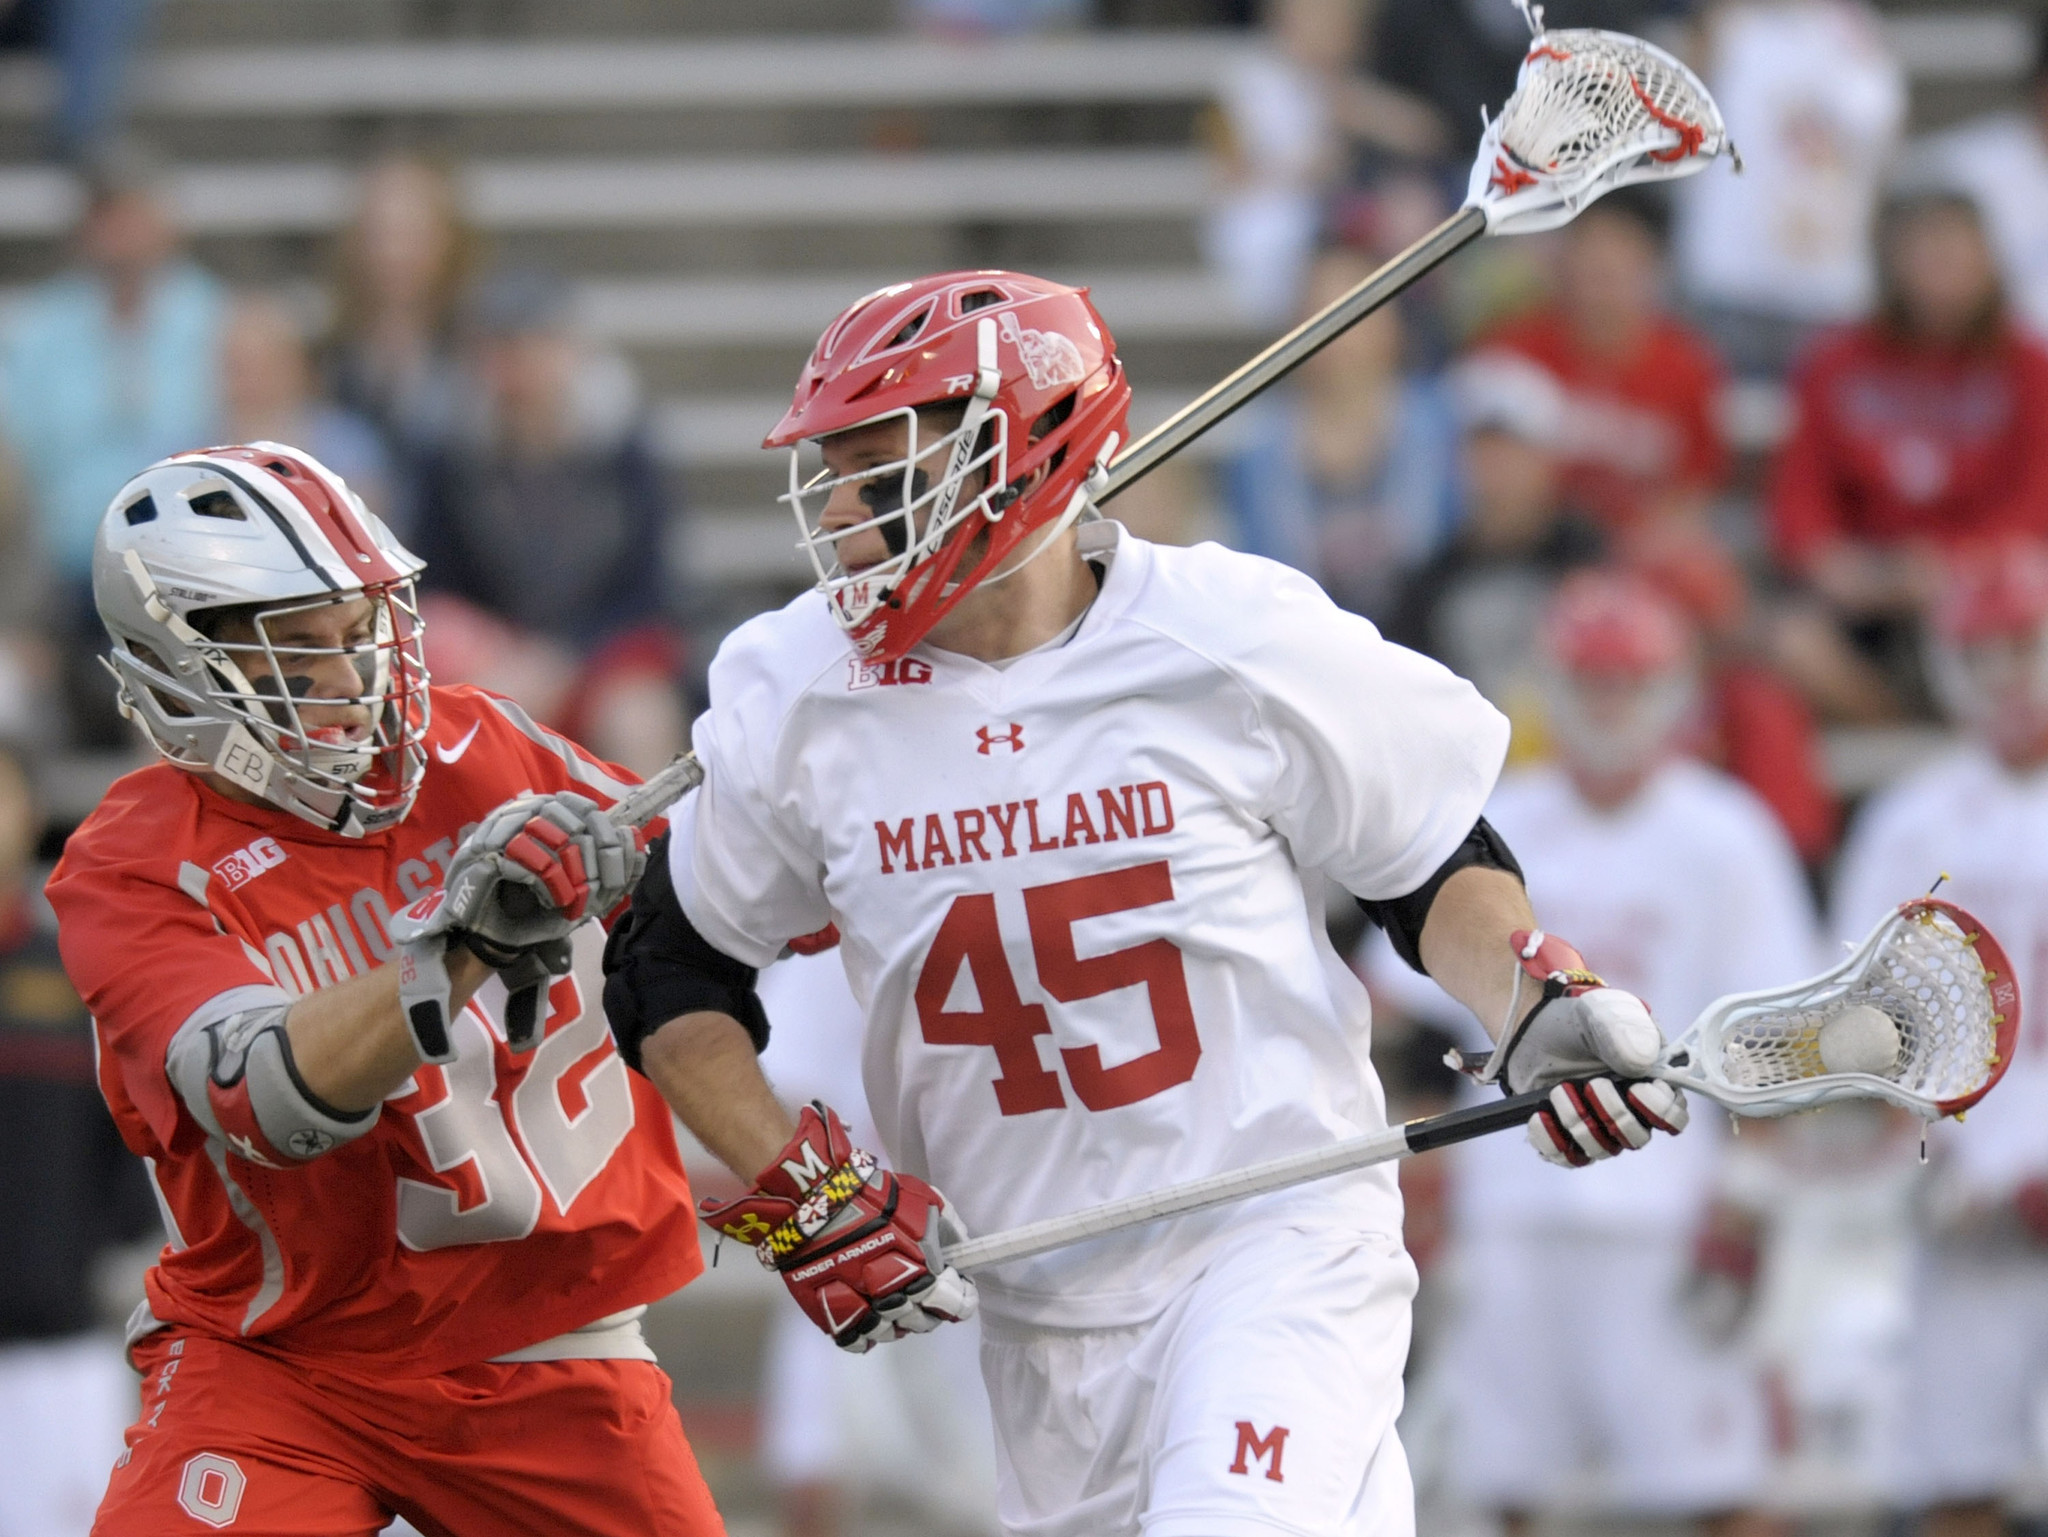 Bs-sp-terps-ohio-state-lacrosse-0425-20160424